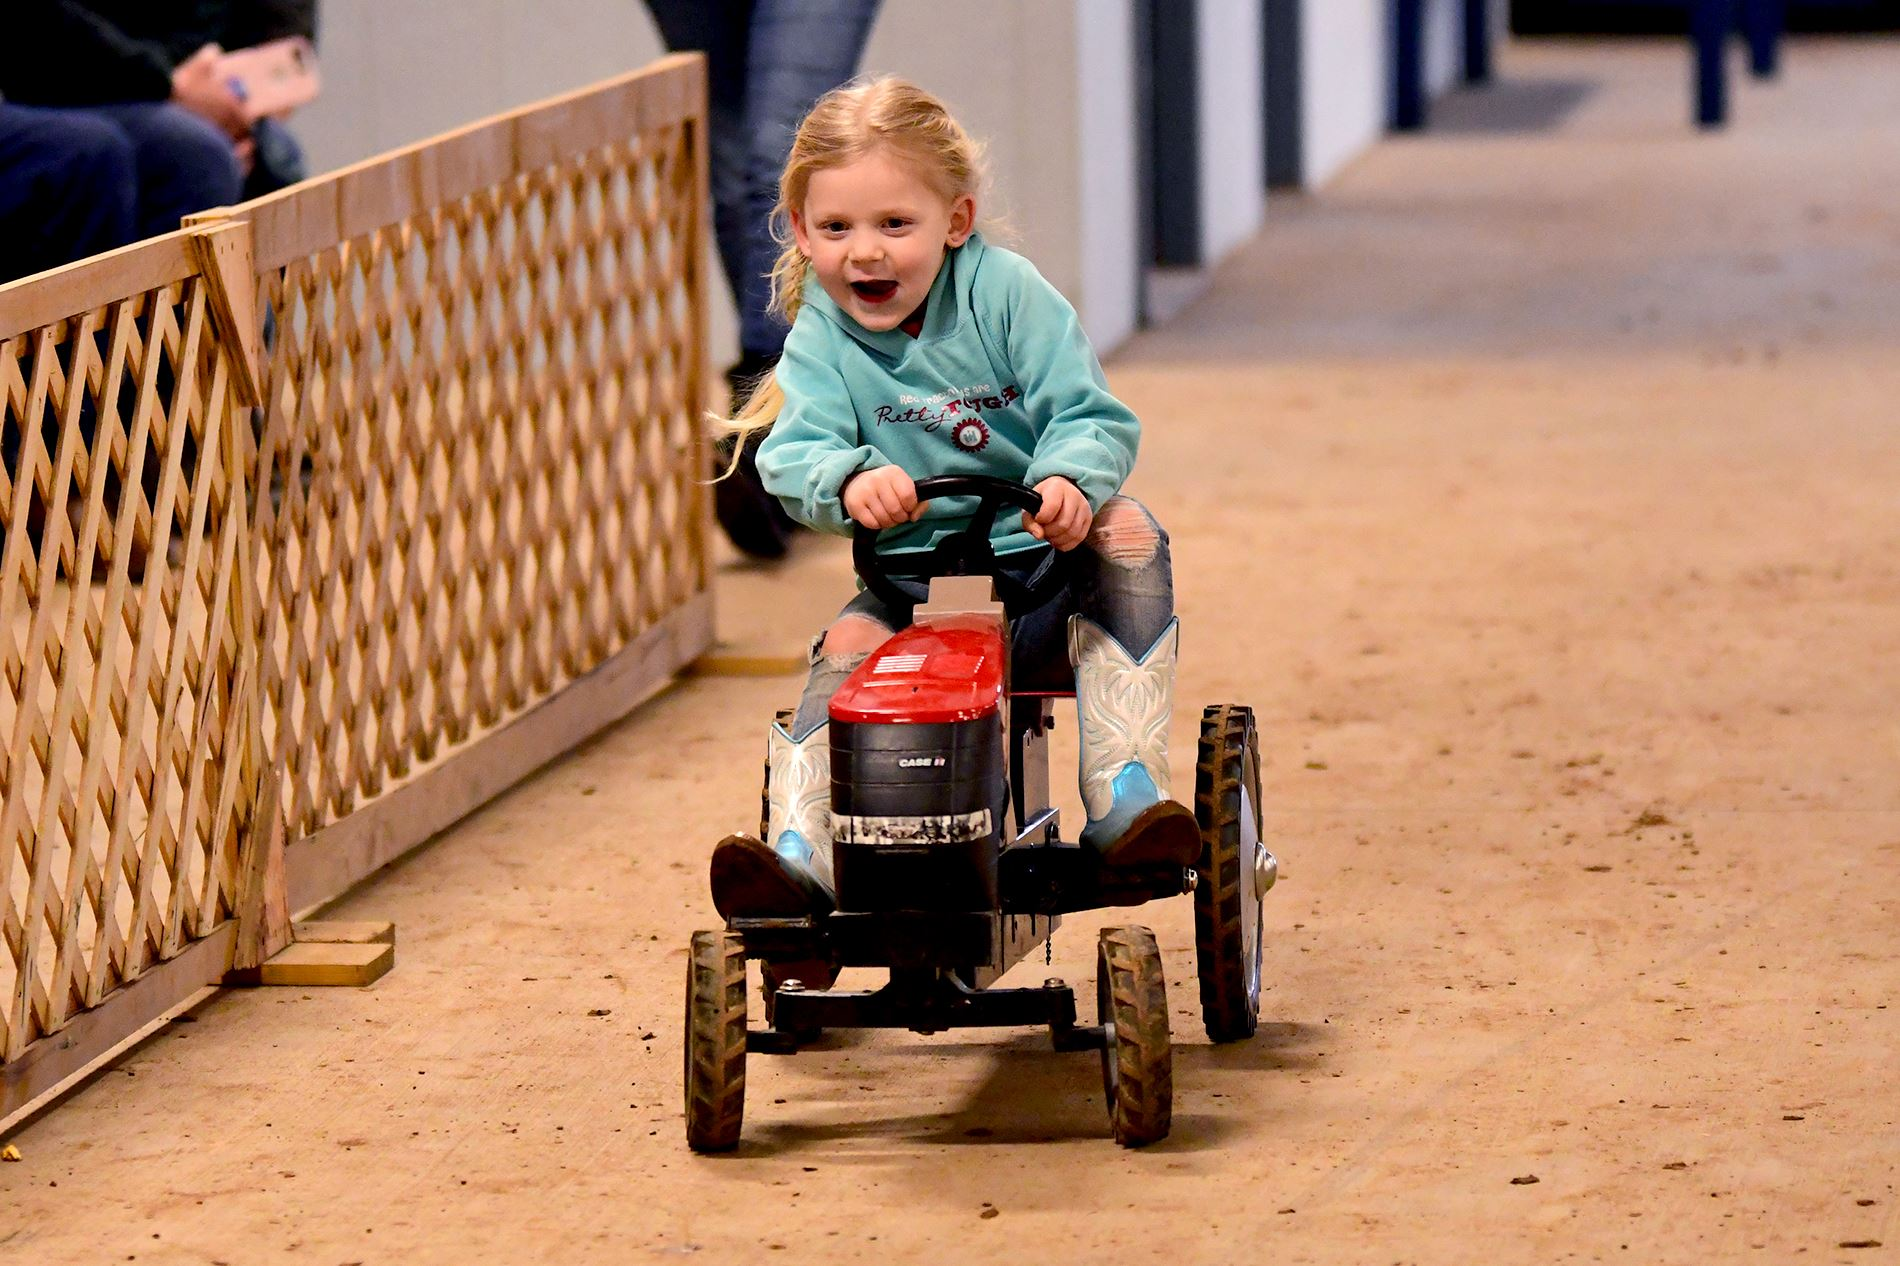 Girl riding on a pedal tractor